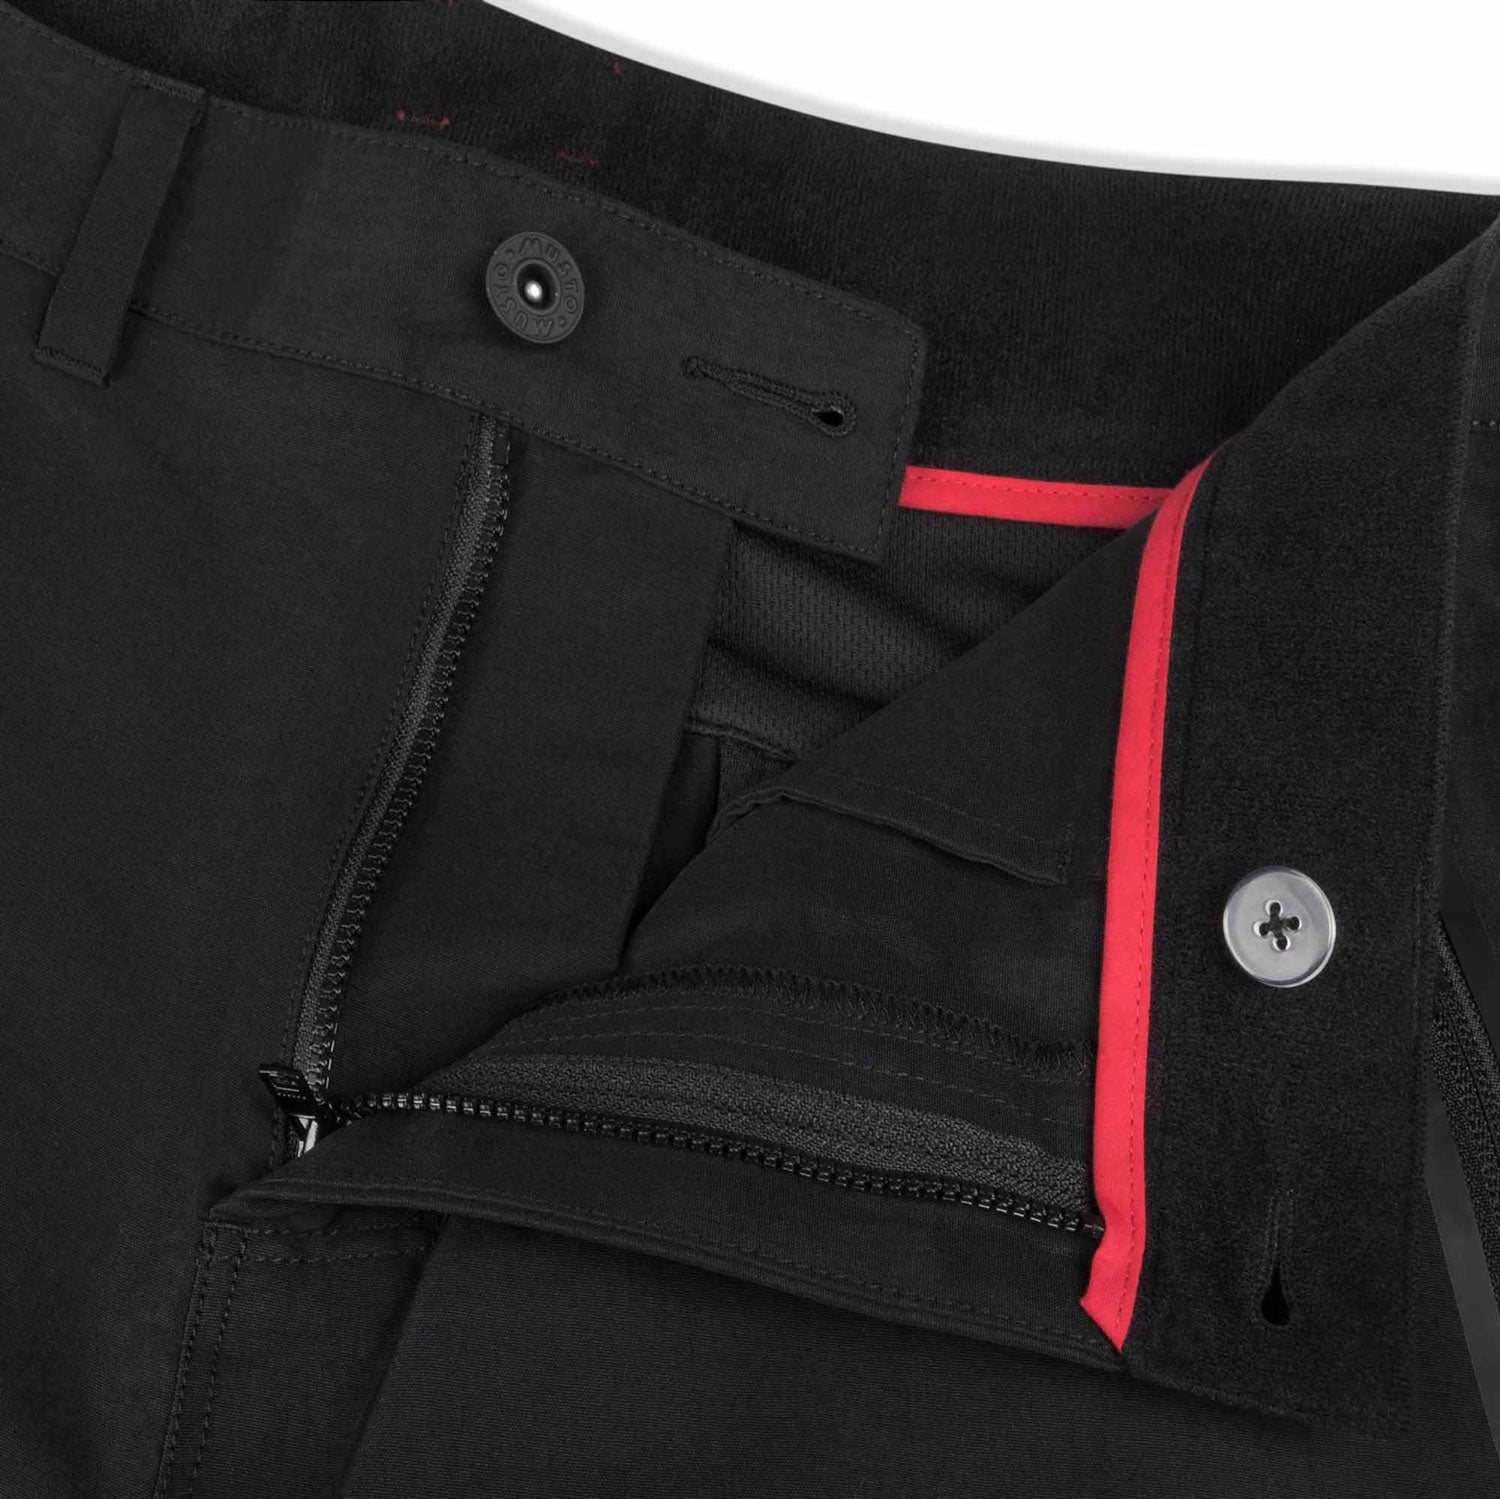 Black trouser button waistband with red piping